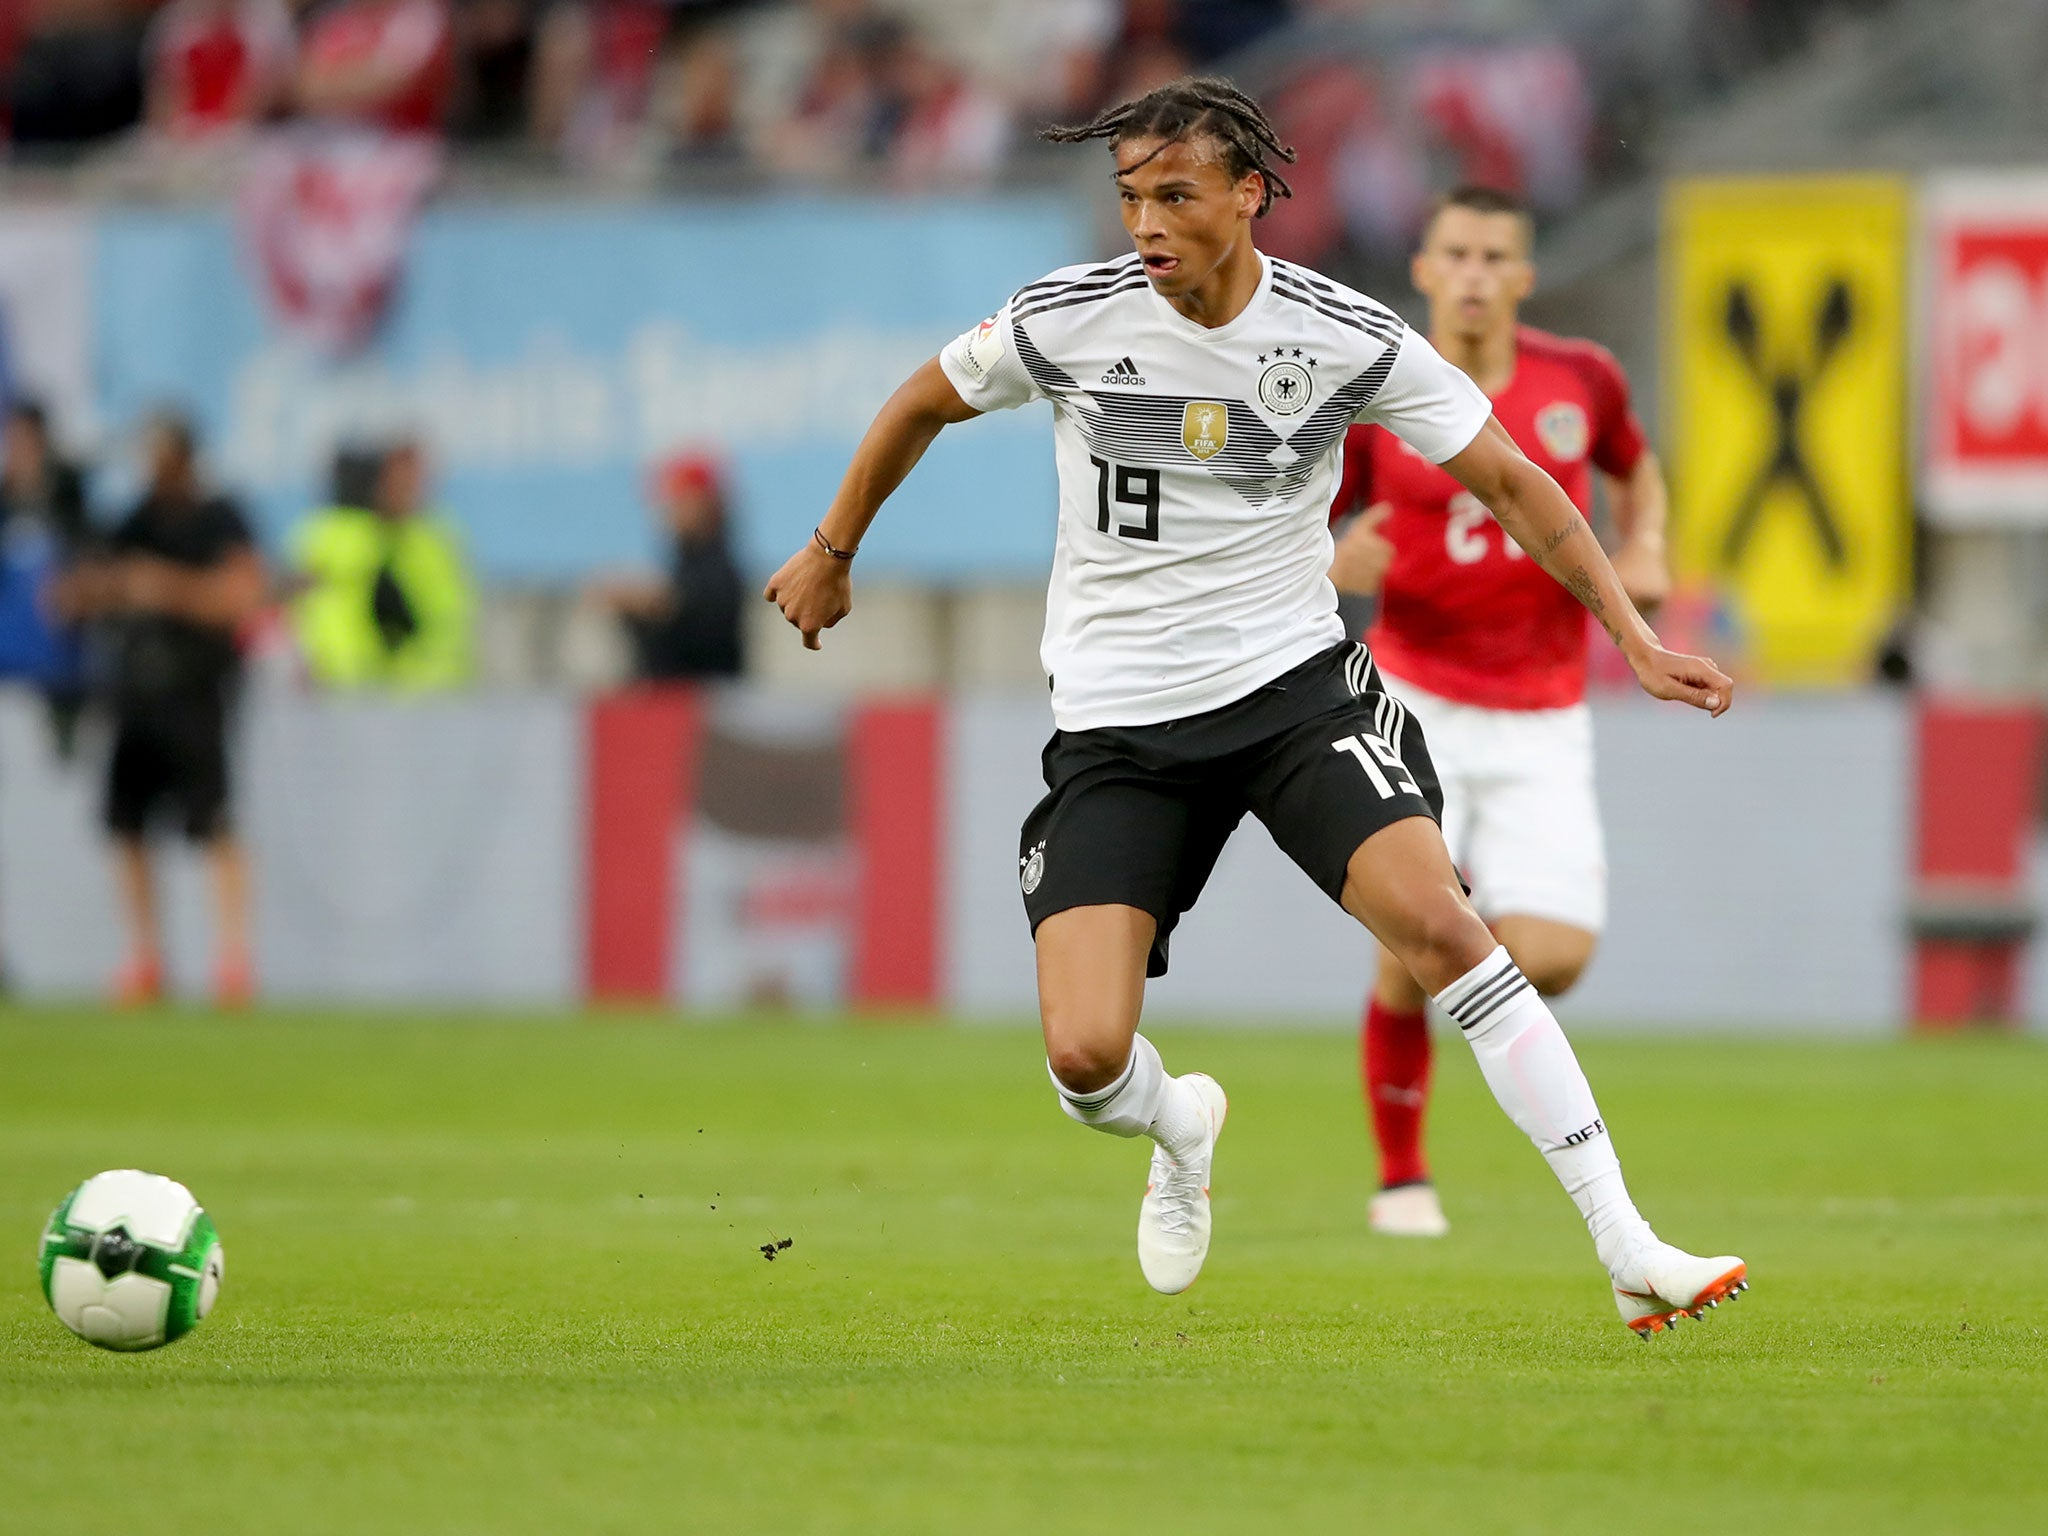 f656cbaad8a World Cup 2018: Leroy Sane promises to 'bounce back stronger' after Germany  squad omission | The Independent